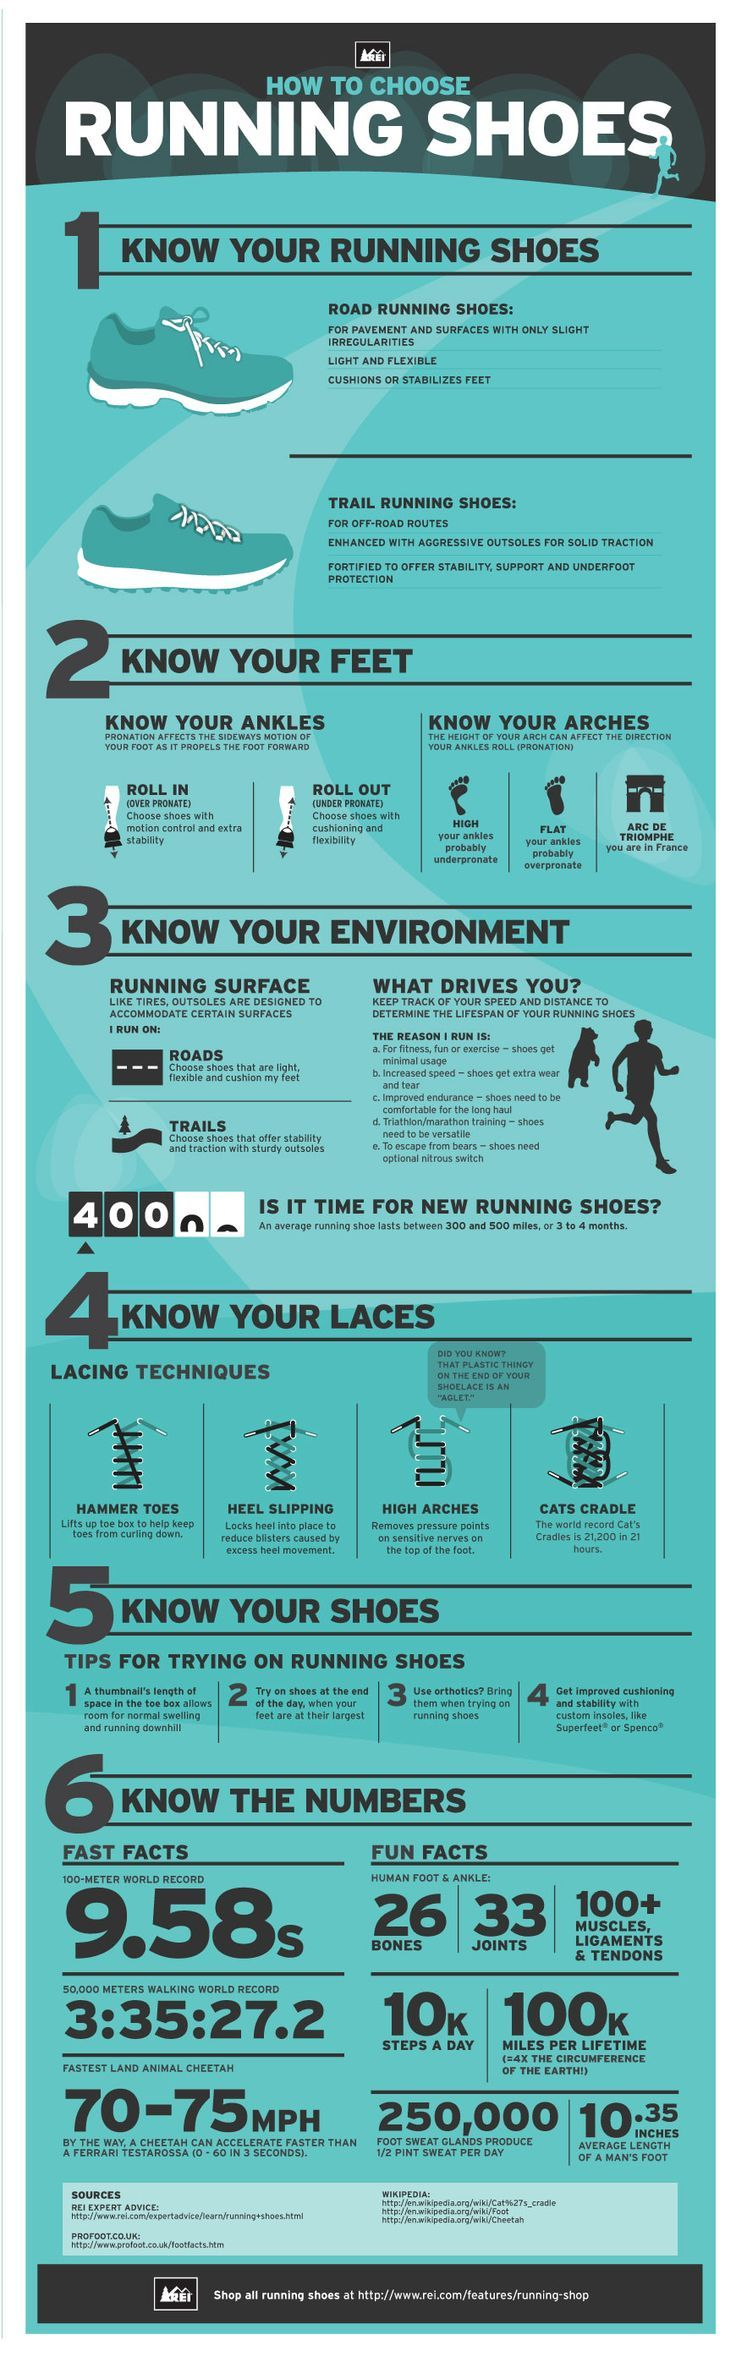 Running Shoes Infographic: How to Choose the Right Running Shoes for You by rei.com #Running_Shoes #Infographic #rei